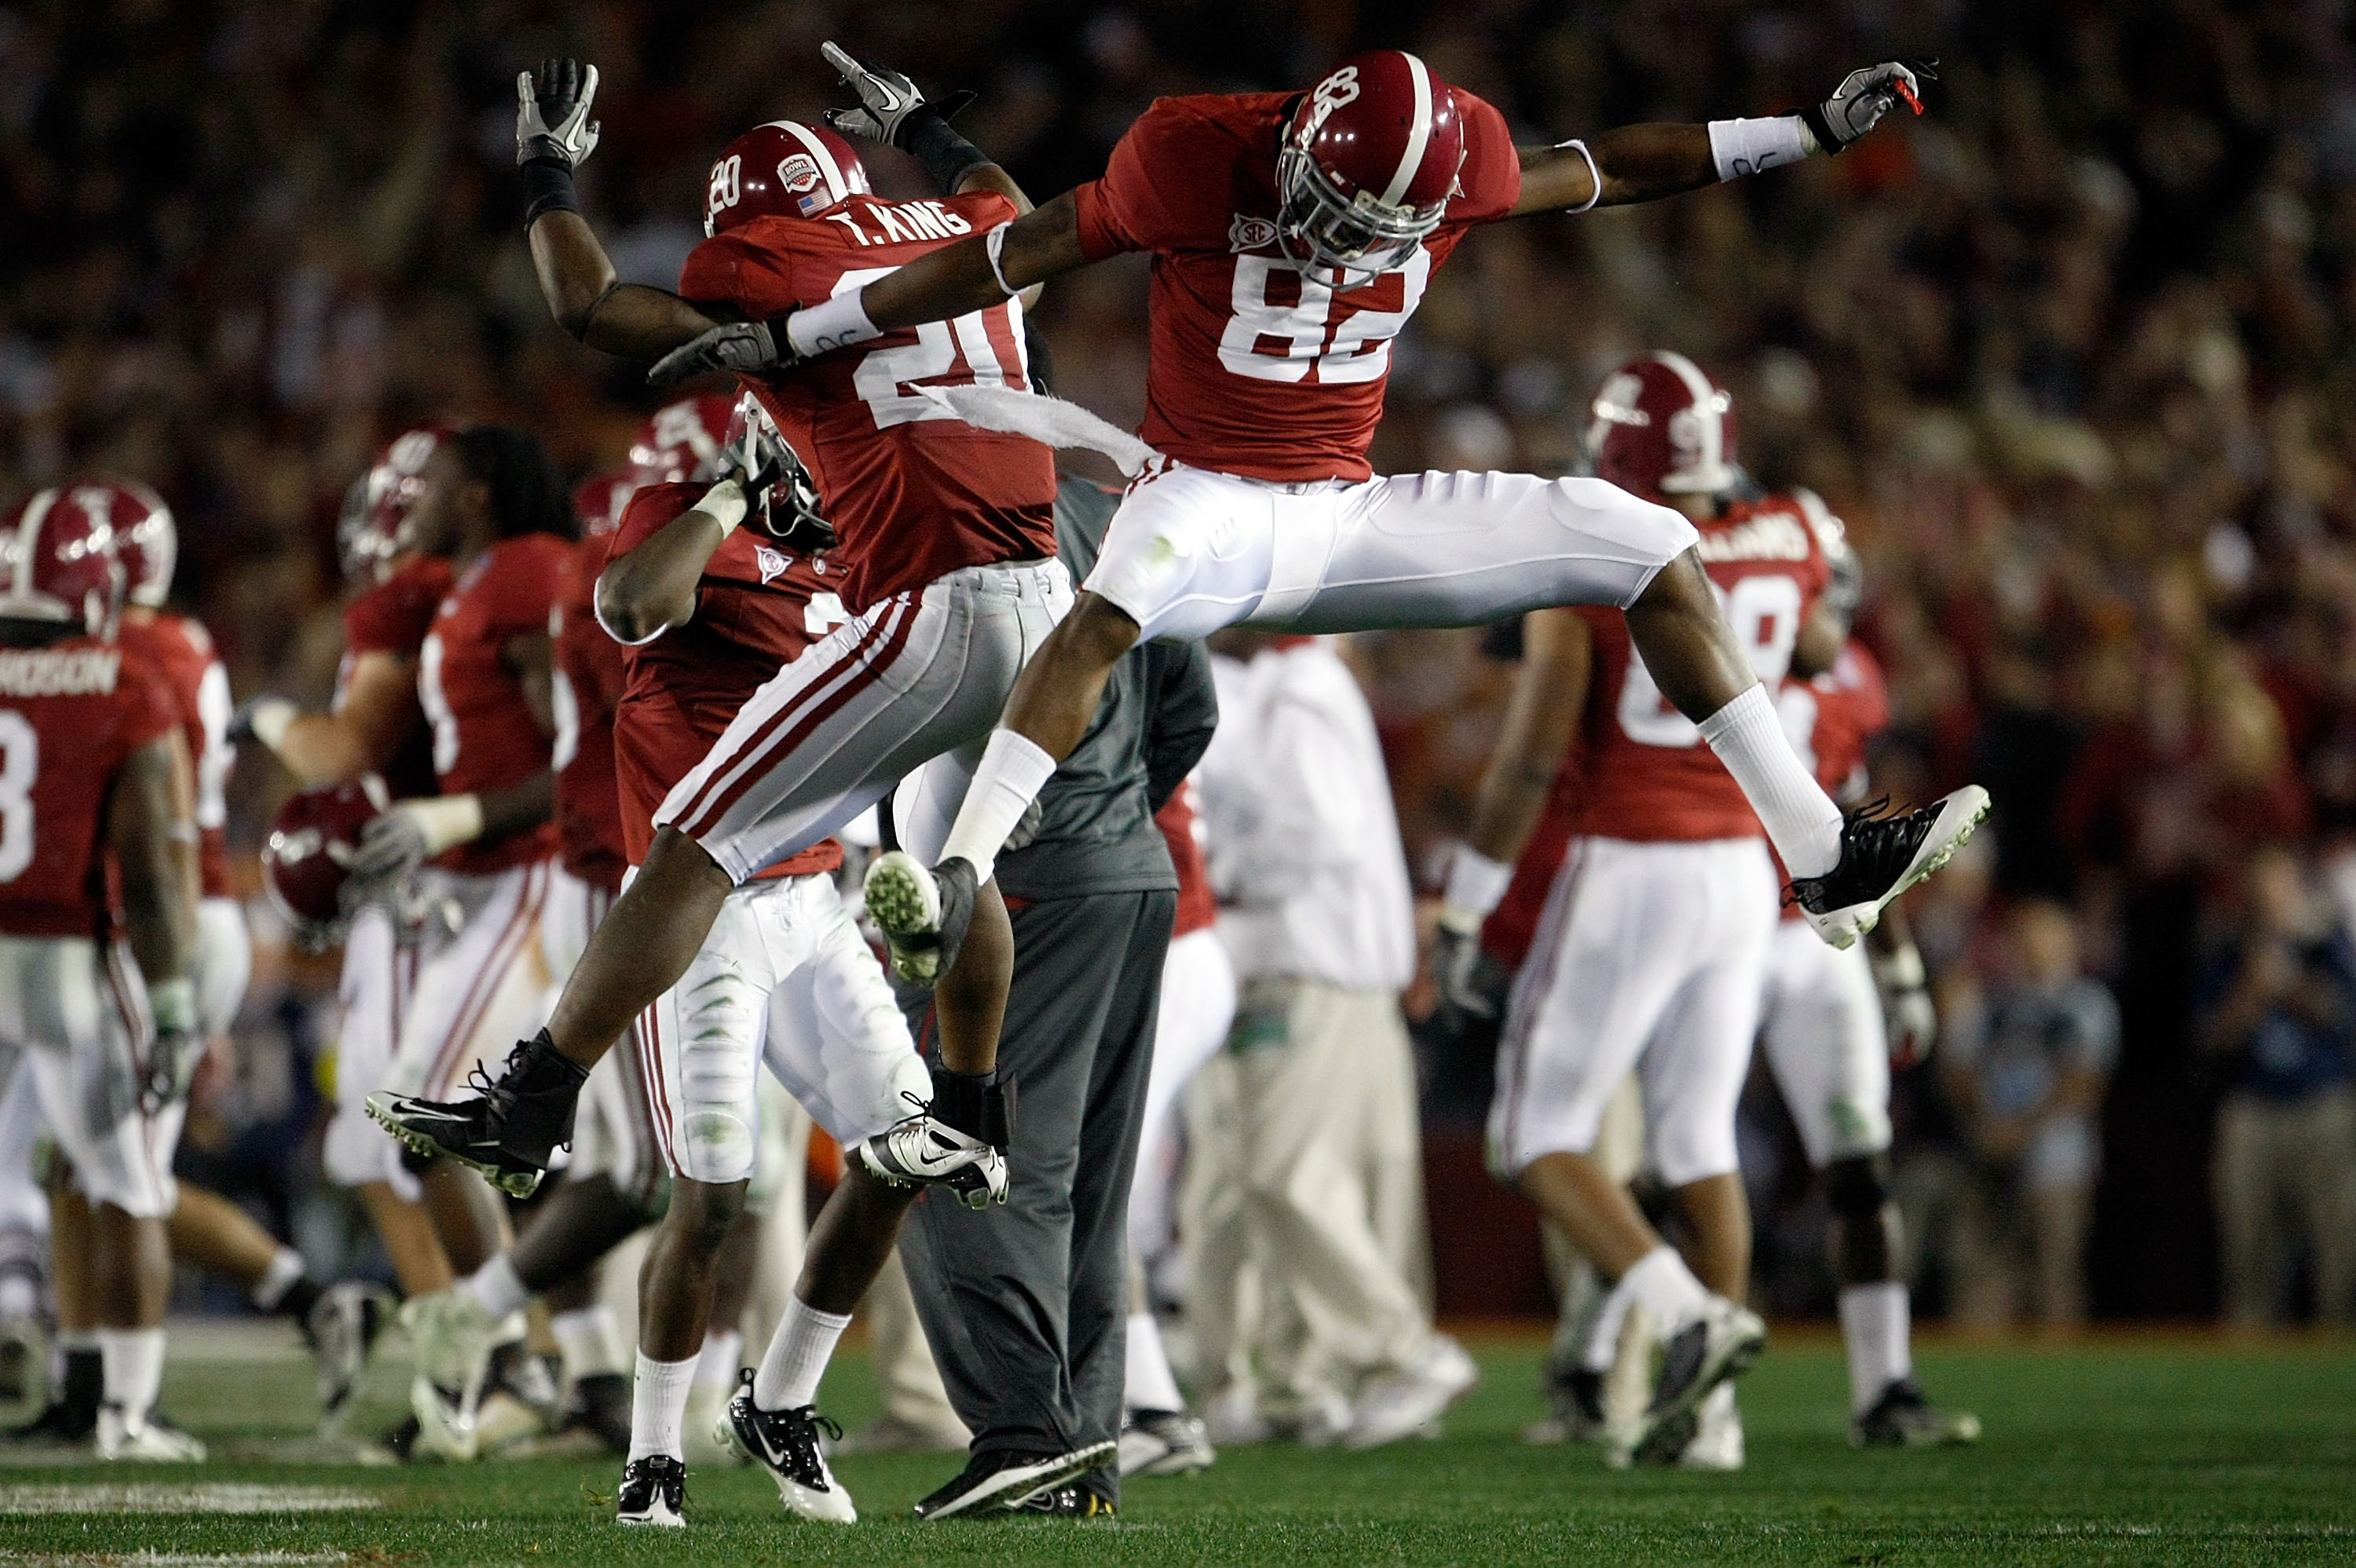 PASADENA, CA - JANUARY 07:  Cornerback Tyrone King #20 and wide receiver Earl Alexander #82 of the Alabama Crimson Tide celebrate during the Citi BCS National Championship game against the Texas Longhorns at the Rose Bowl on January 7, 2010 in Pasadena, C